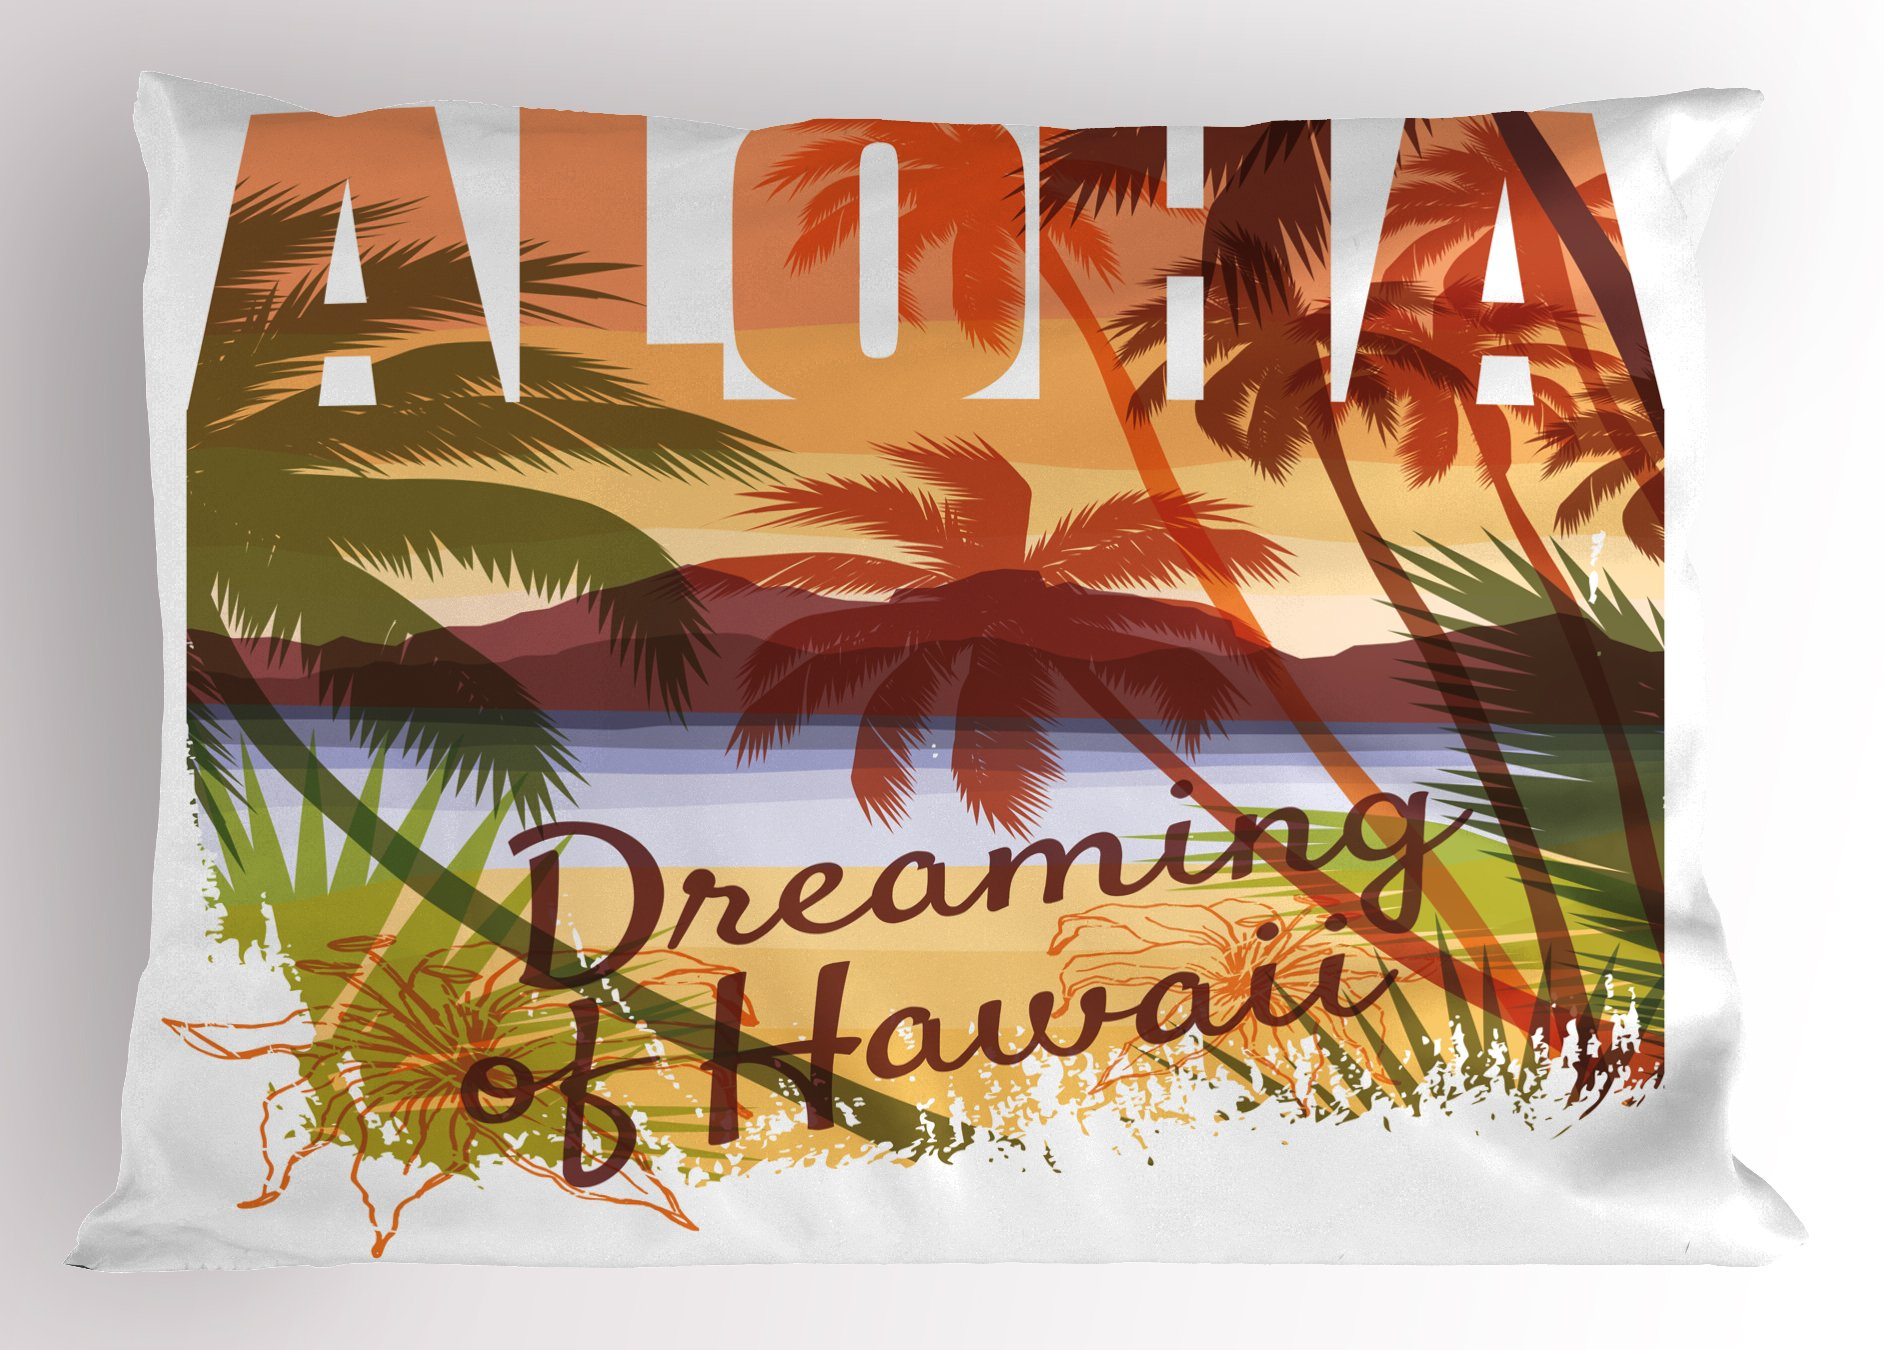 Lunarable Vintage Hawaii Pillow Sham, Aloha Dreaming of Hawaii Landscape Image with Mountains and Palm Trees Beach, Decorative Standard Queen Size Printed Pillowcase, 30 X 20 Inches, Multicolor